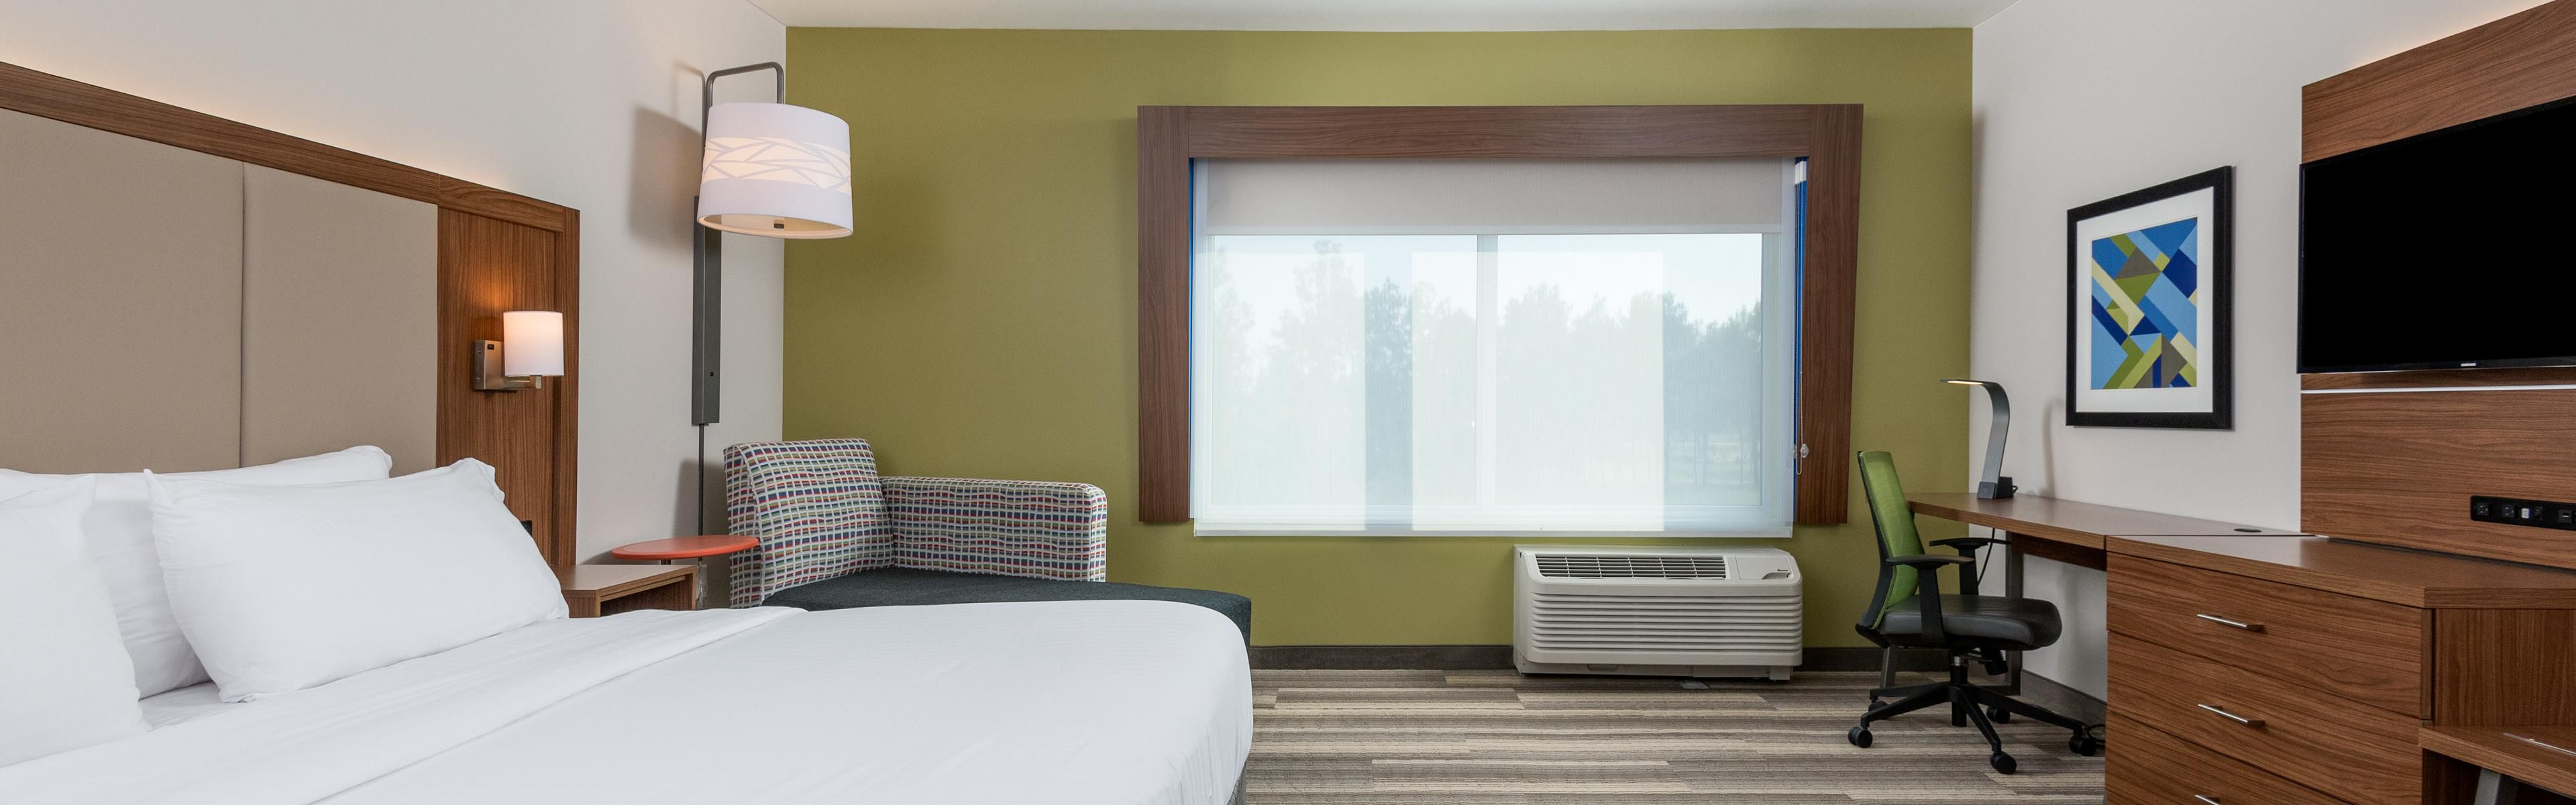 Holiday Inn Express & Suites Queensbury - Lake George Area image 1